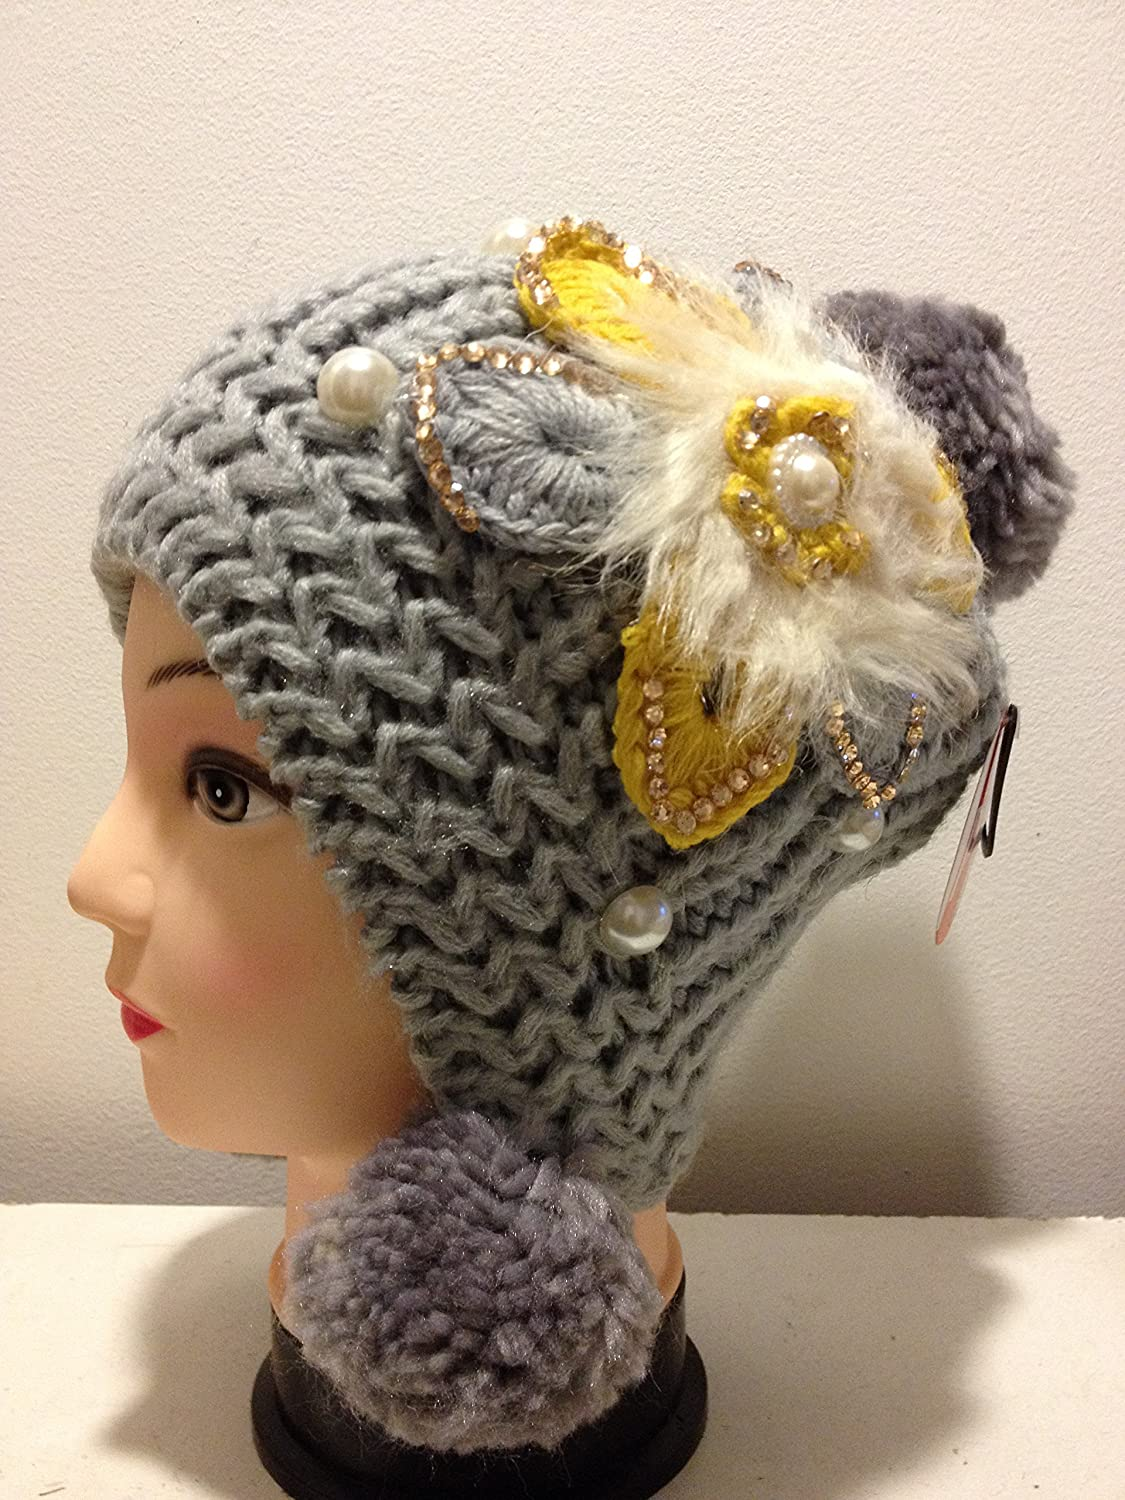 Knitted Pom-pom Ball Beanie Winter Hat Woman Girls - Gray Color